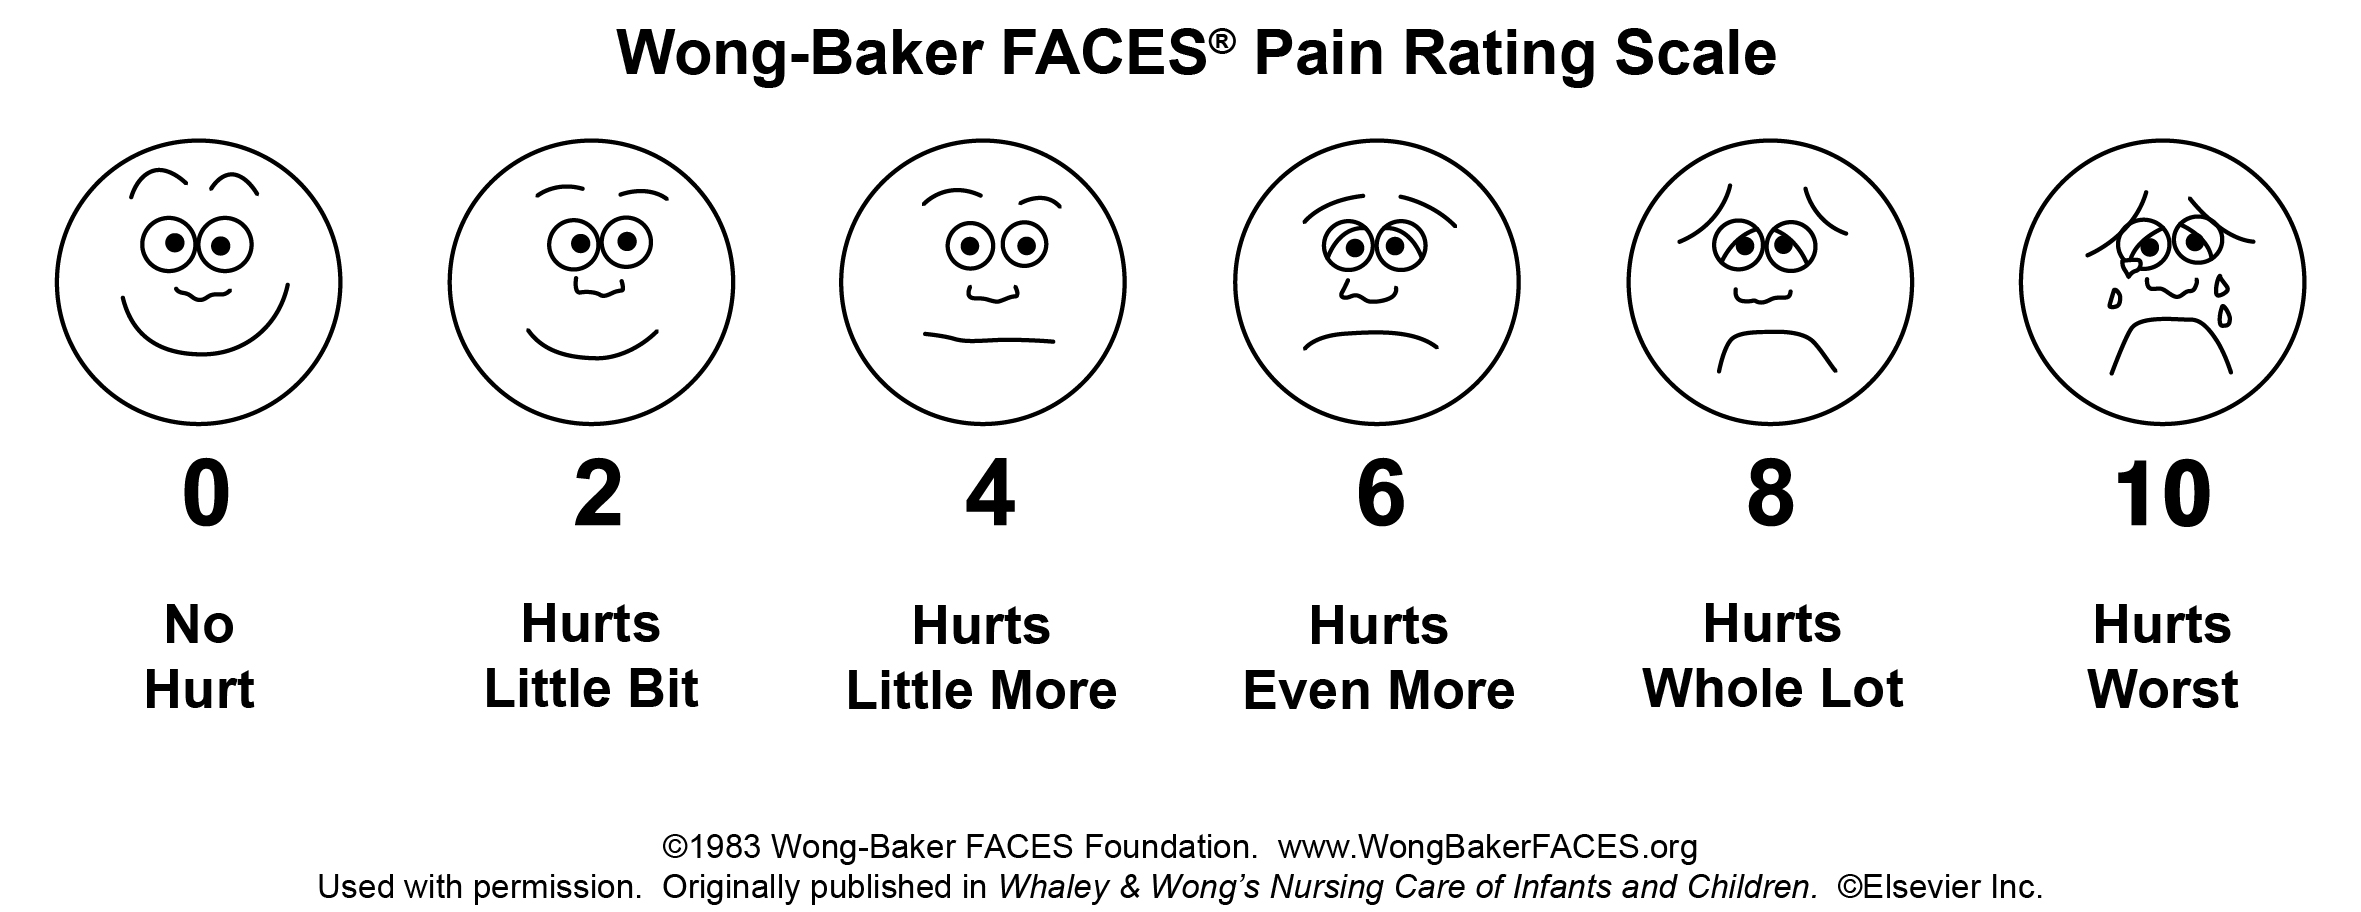 Challenger image with regard to faces pain scale printable